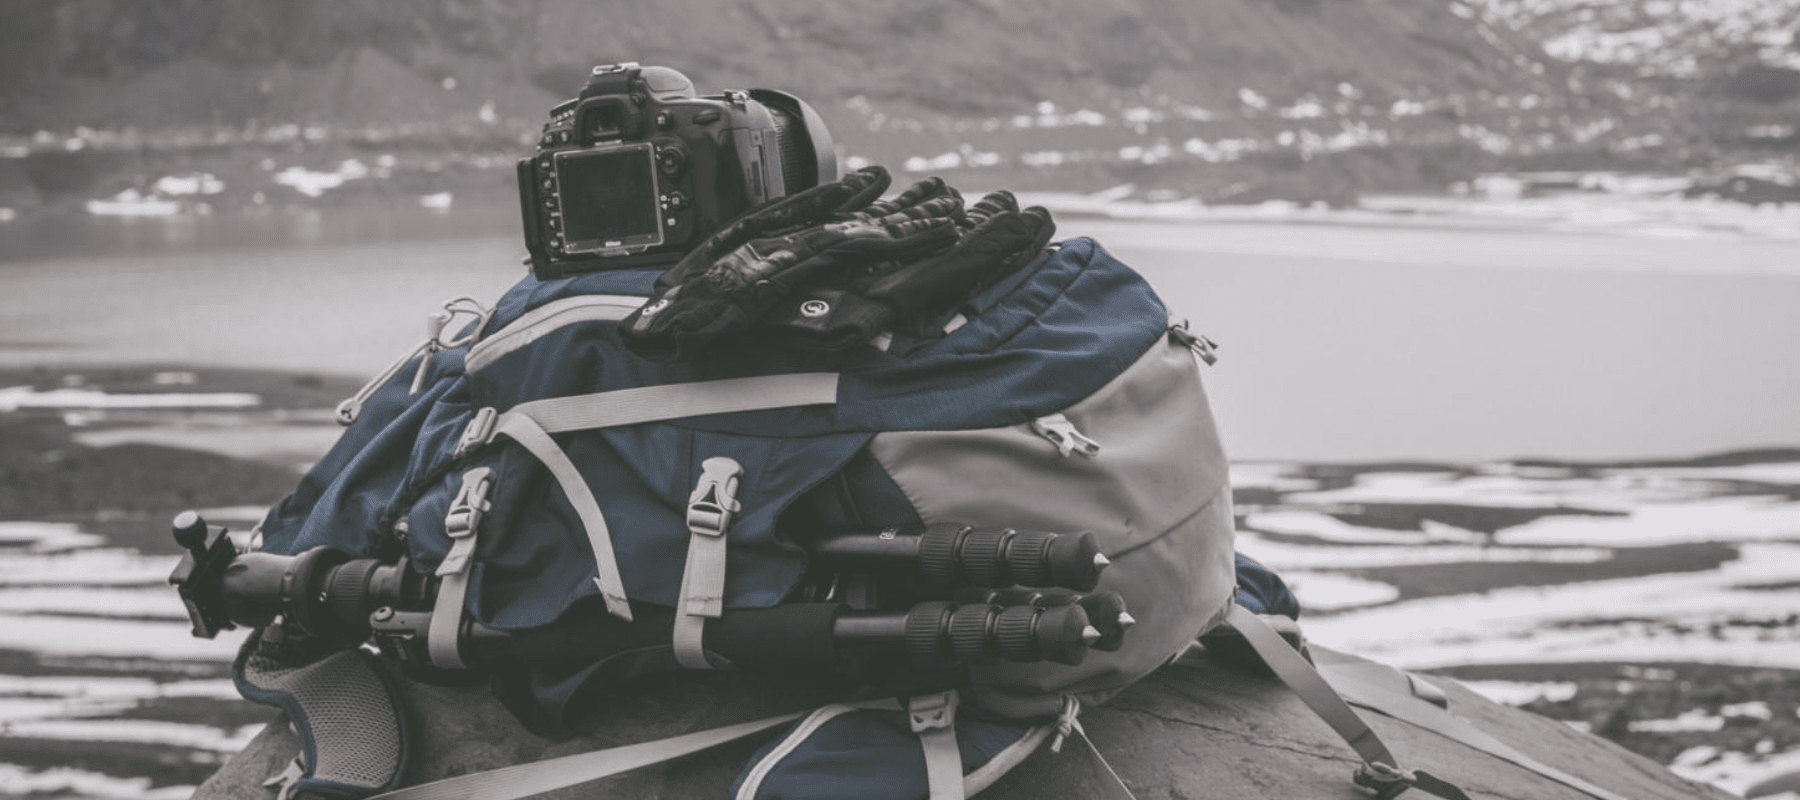 Camera bag and gear in the snow